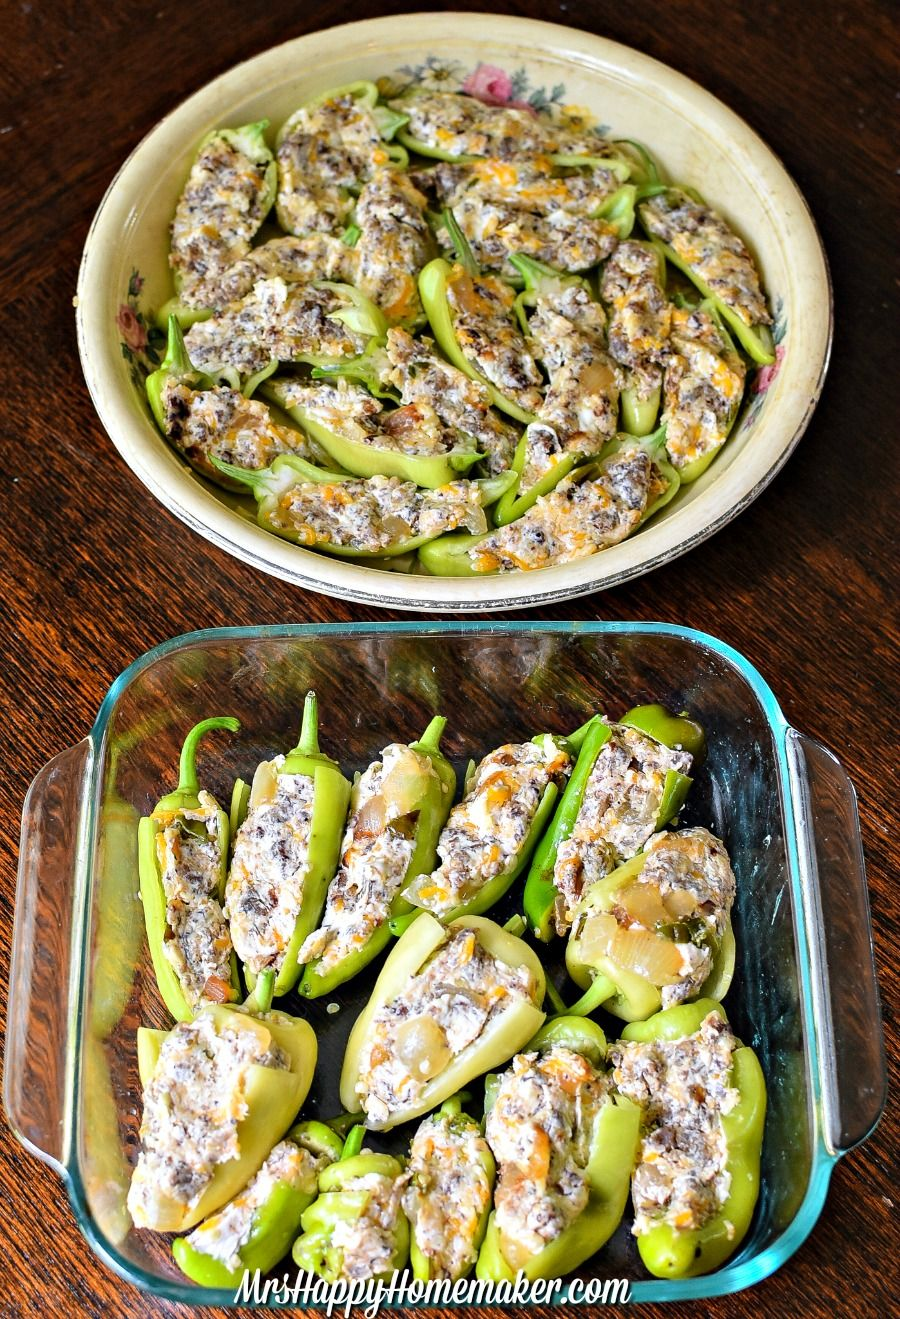 Cheesy Sausage Stuffed Banana Peppers Mrs Happy Homemaker Stuffed Peppers Recipes With Banana Peppers Stuffed Banana Peppers